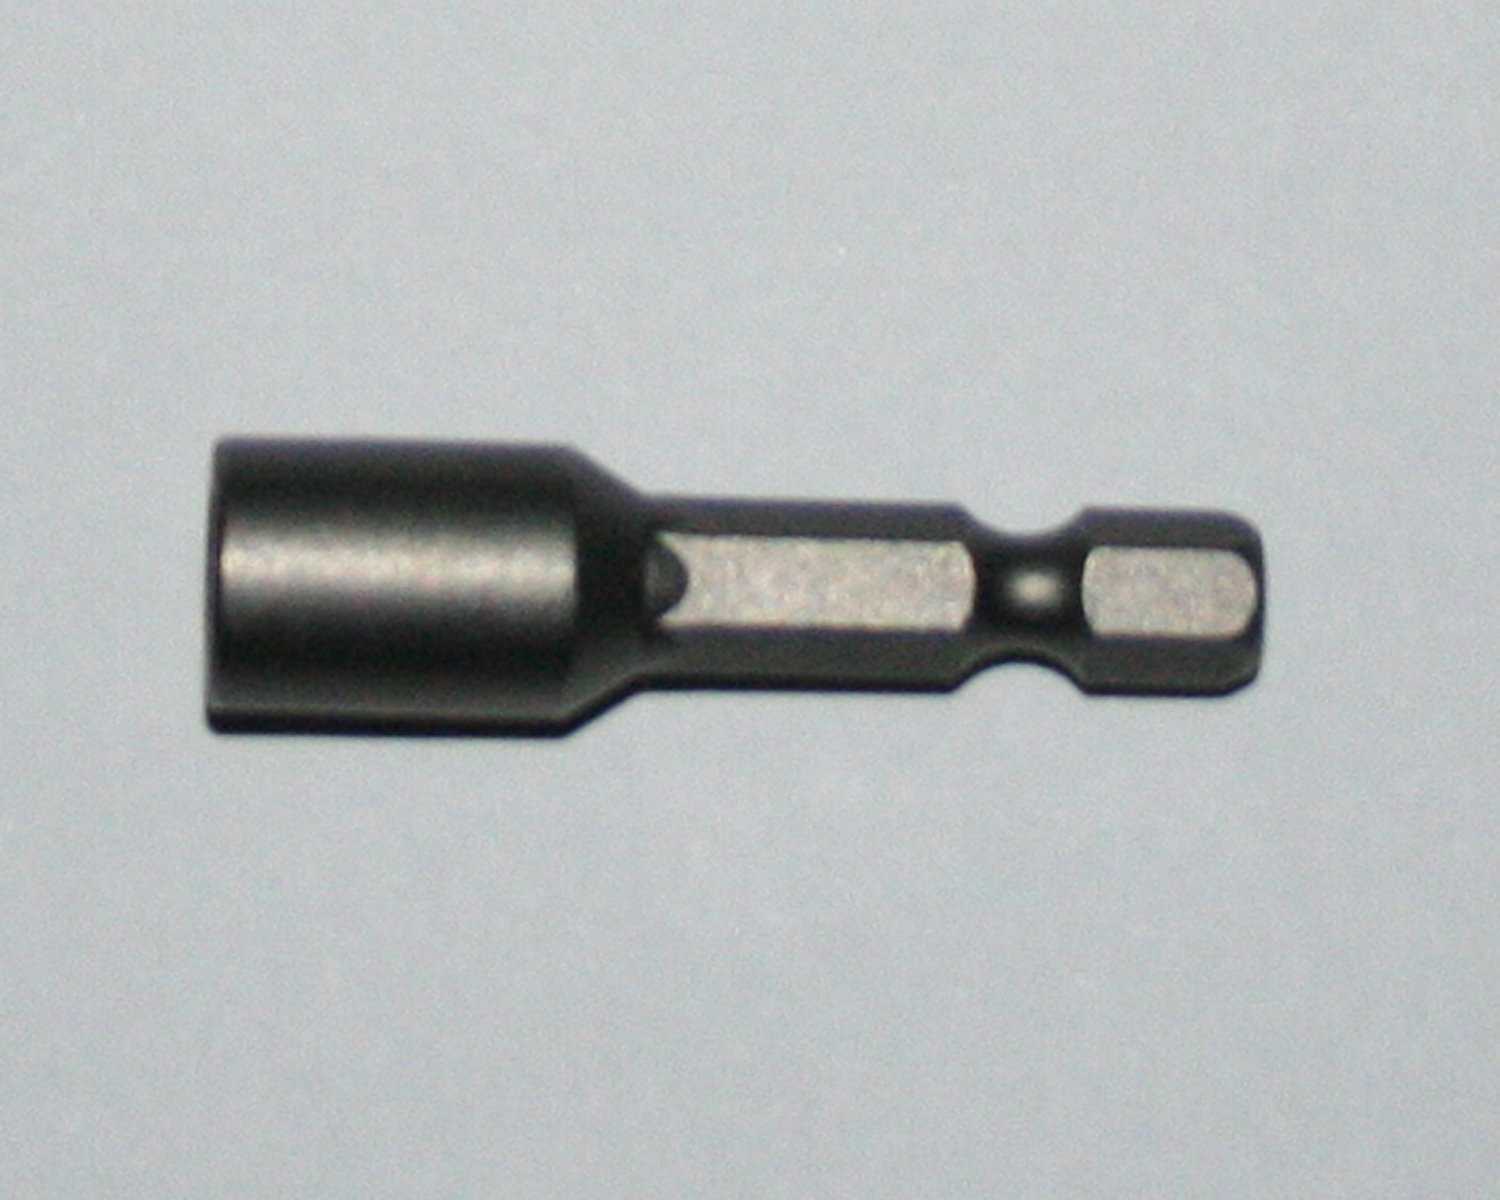 009-104C AP Products Nut Setter 1/4 Inch Hex Driver